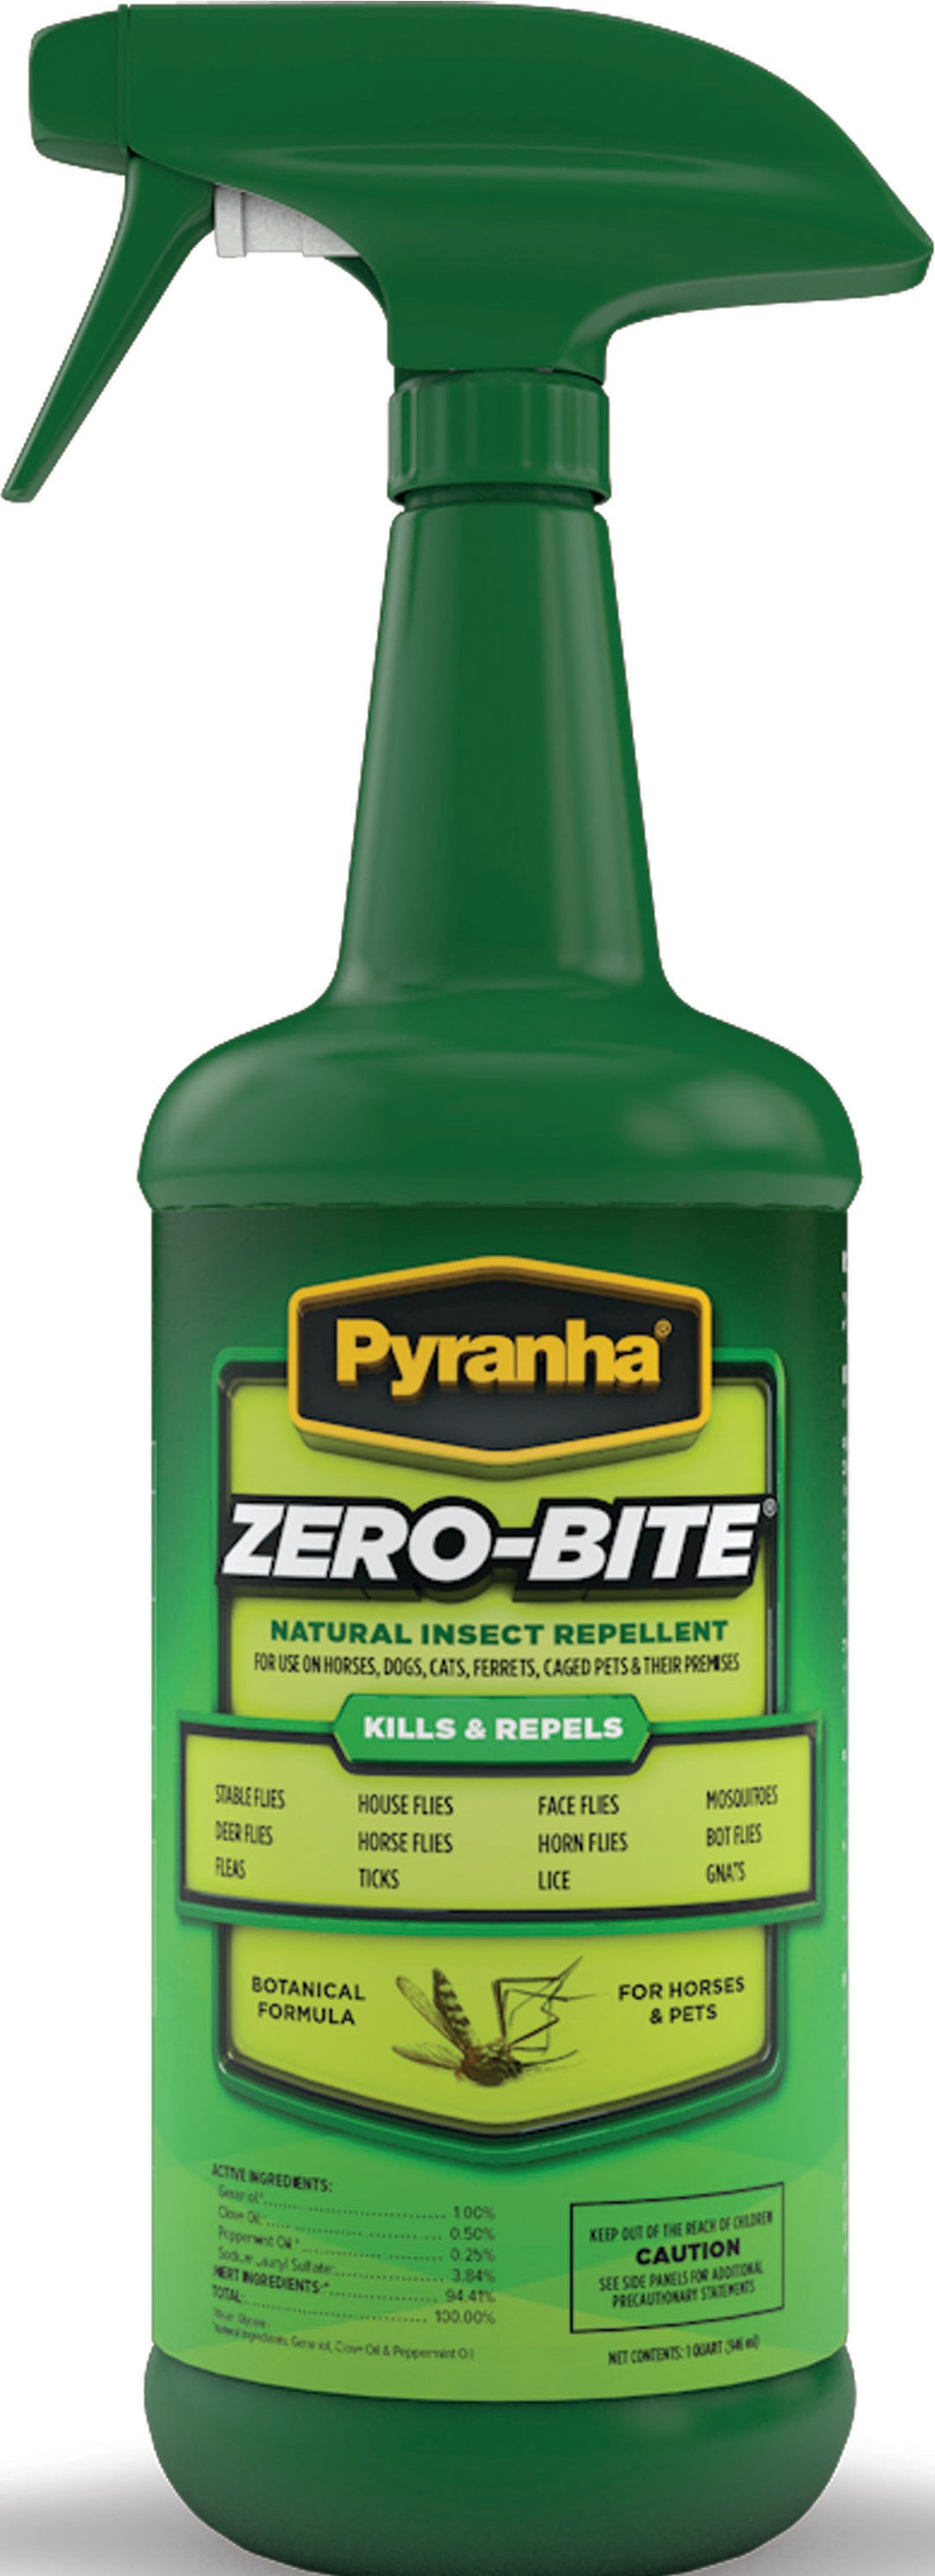 Zero-bite Natural Insect Spray For Horses